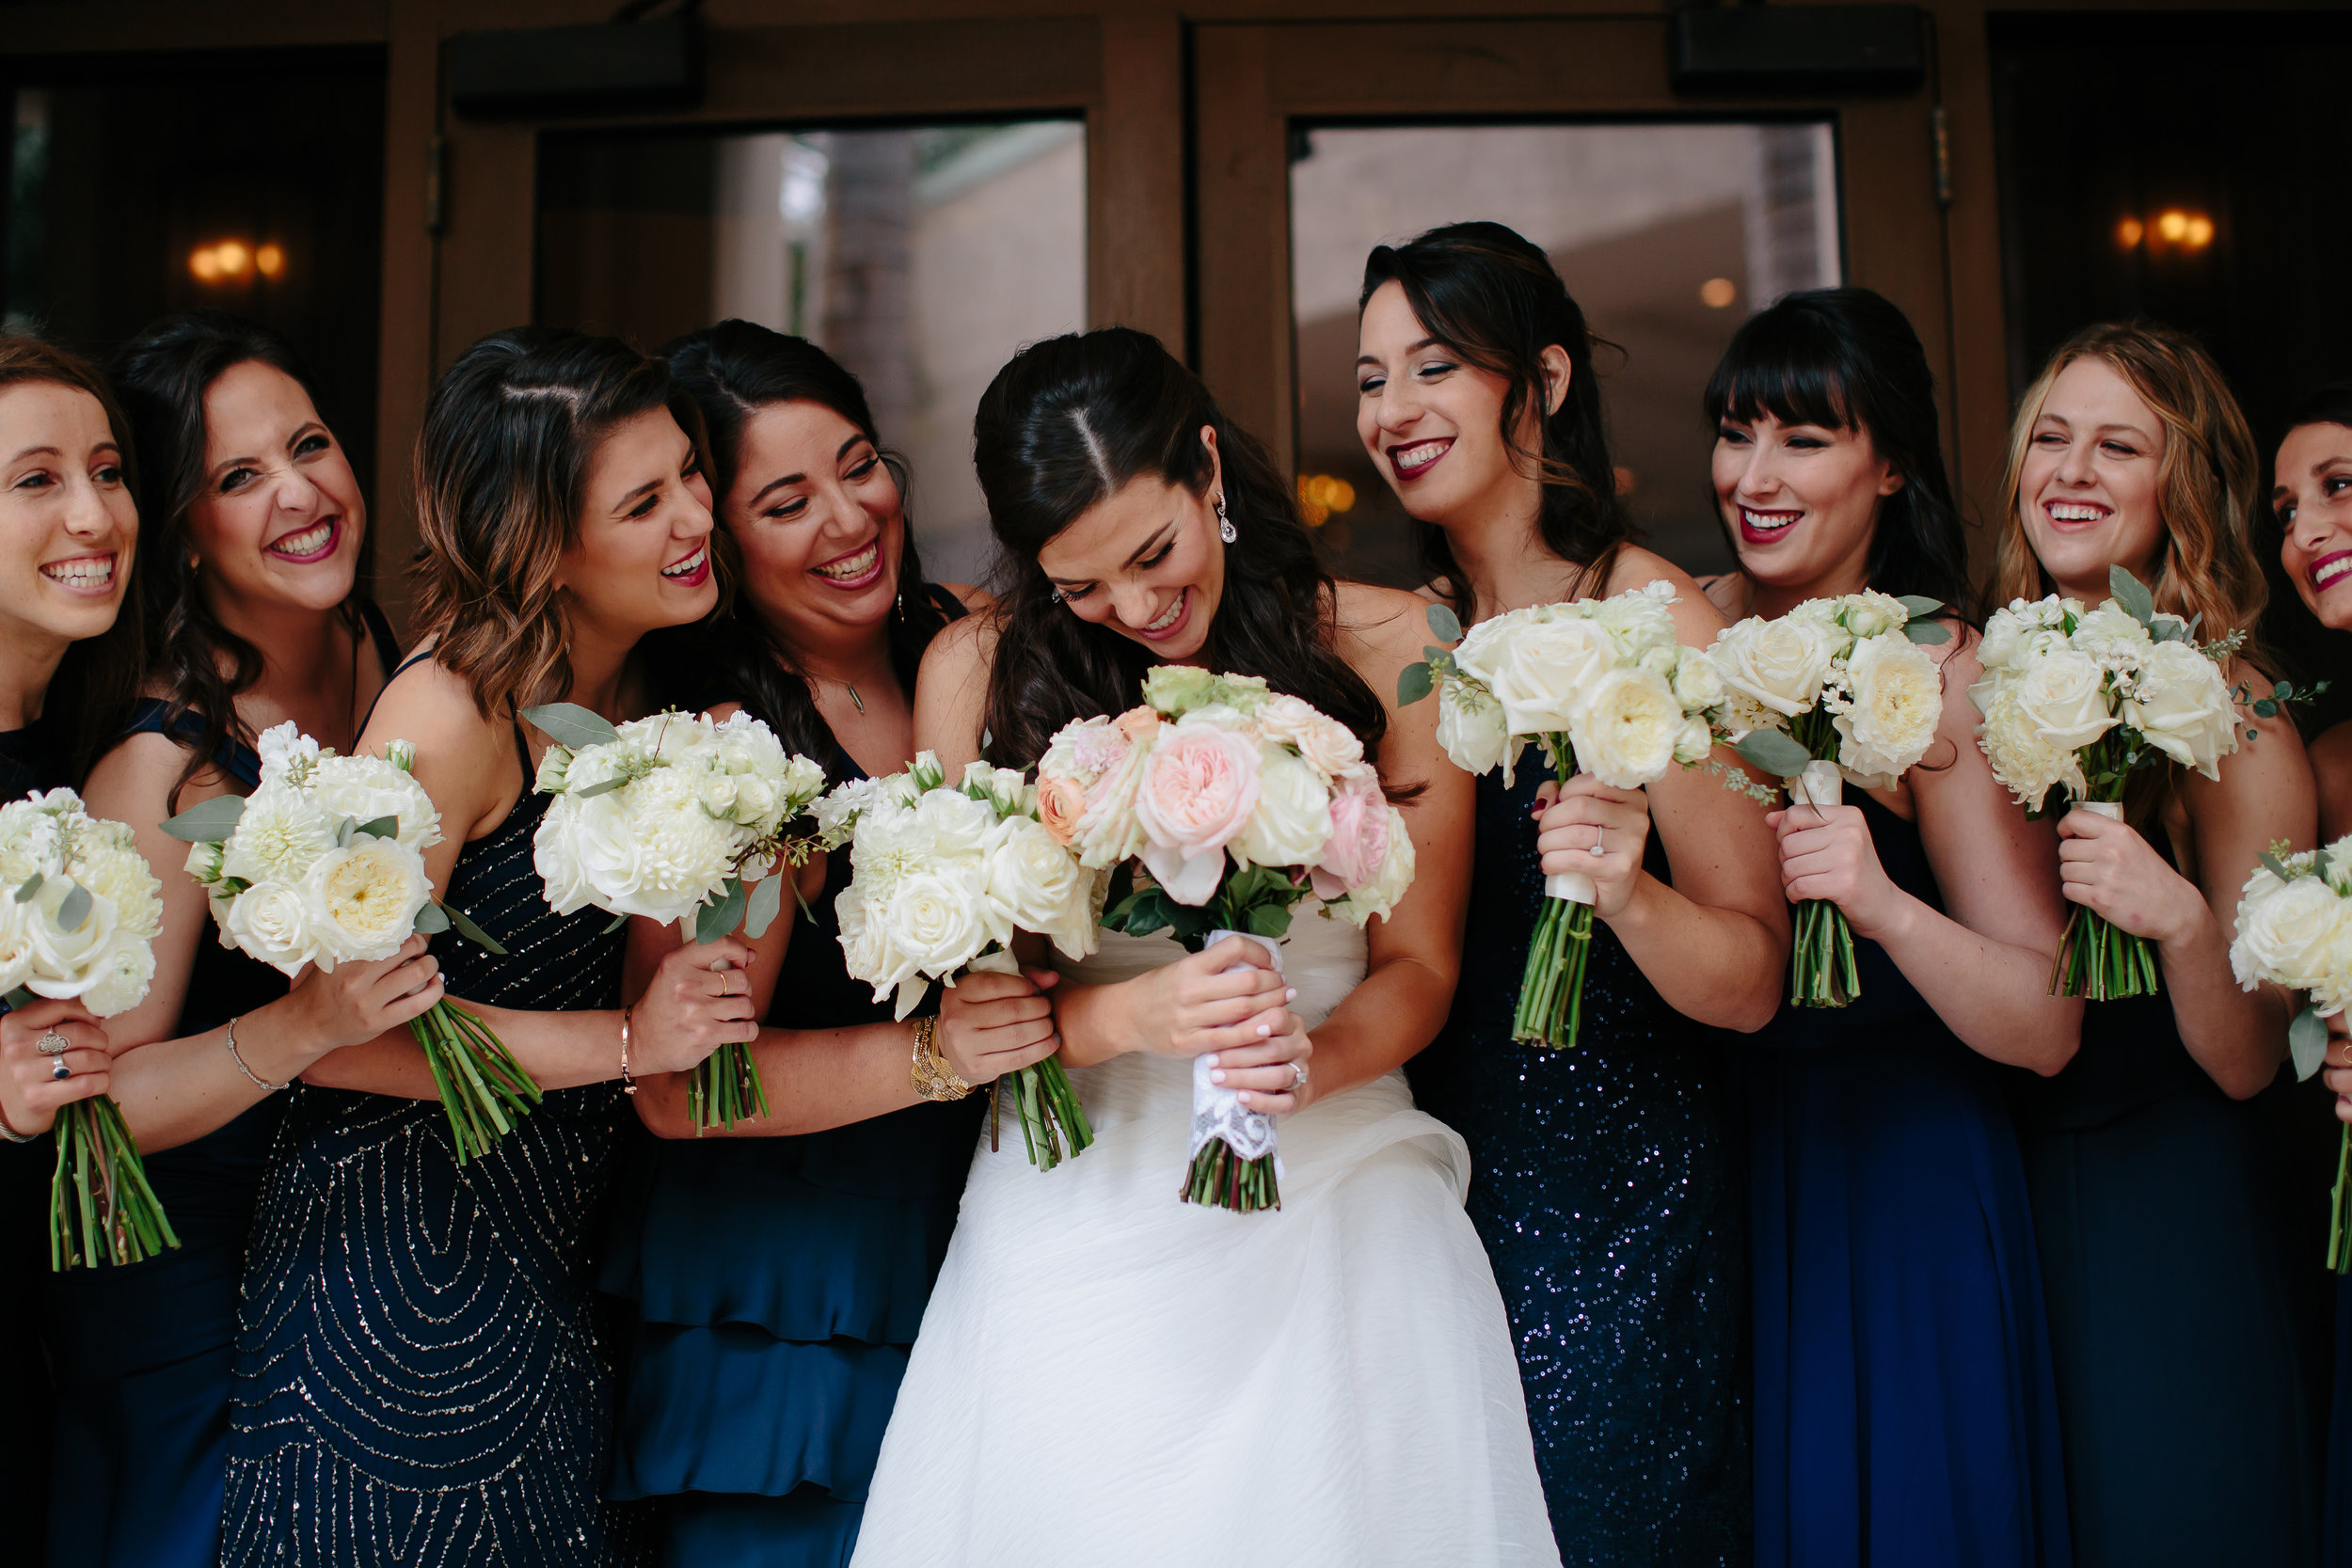 adorable_bridesmaids_ritz_carlton_tiny_house_photo.jpg